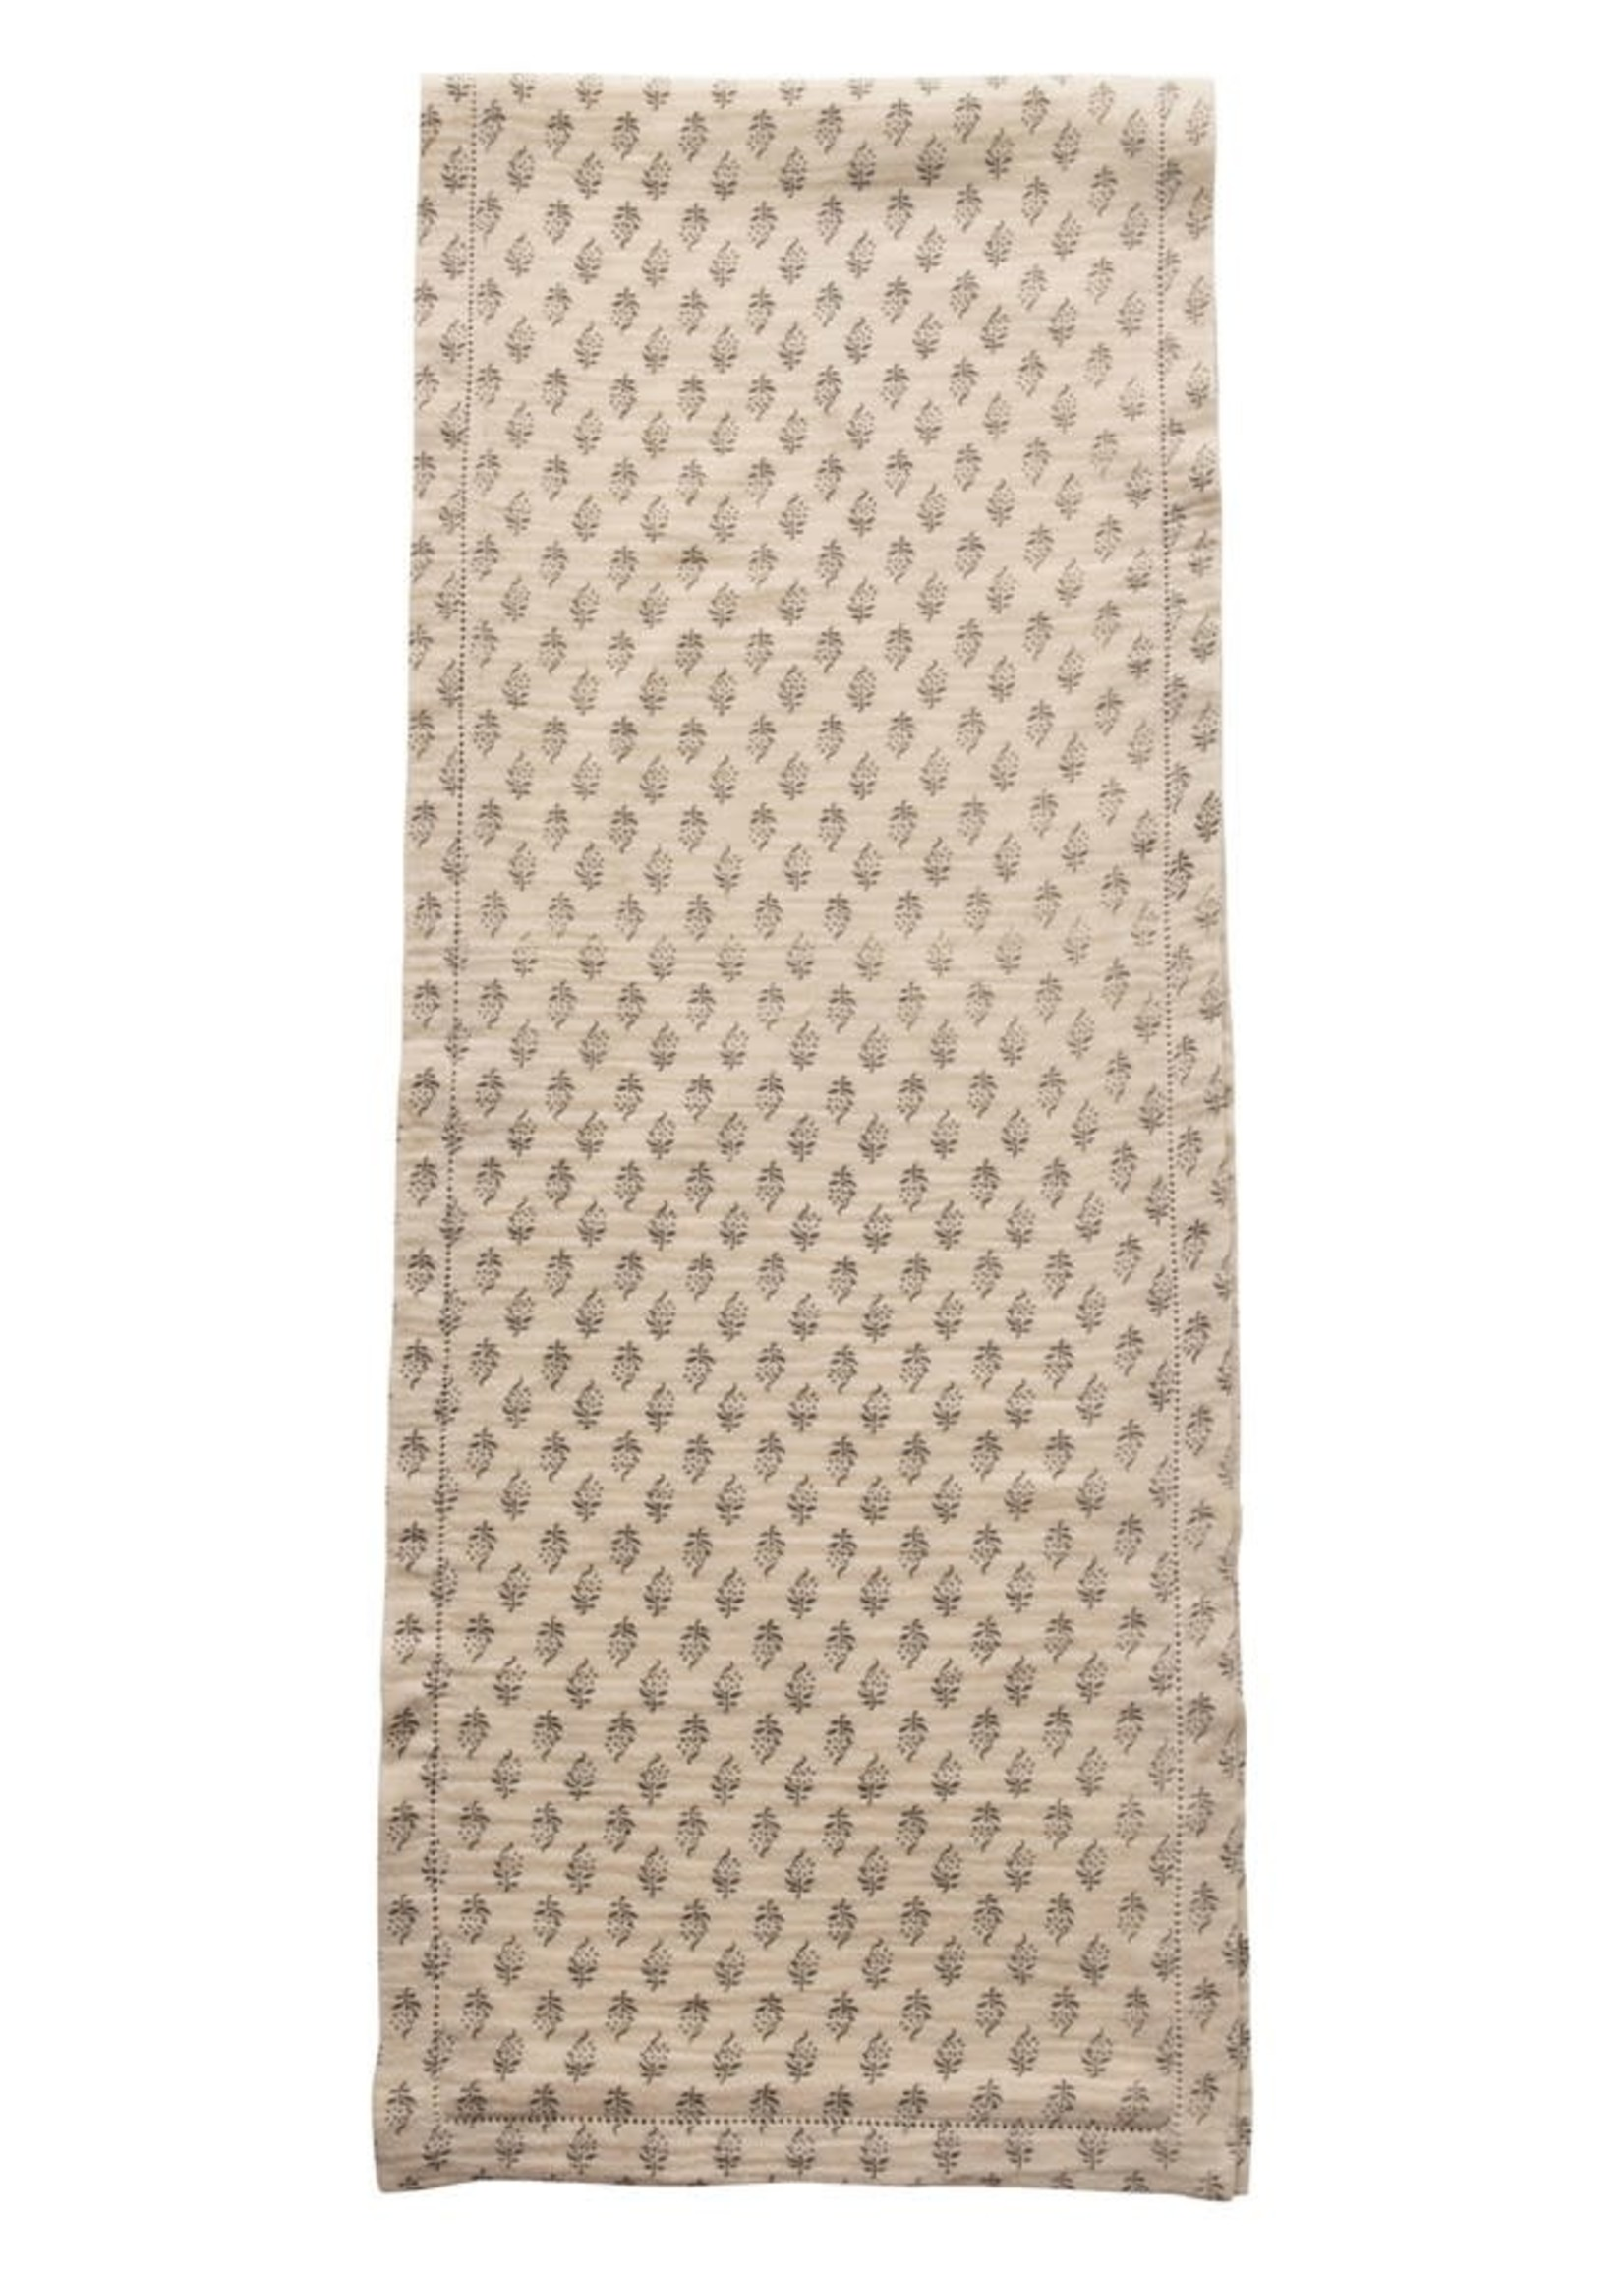 """72""""L x 14""""W Cotton Runner, w/ Printed Floral Pattern, Grey & Cream Color"""